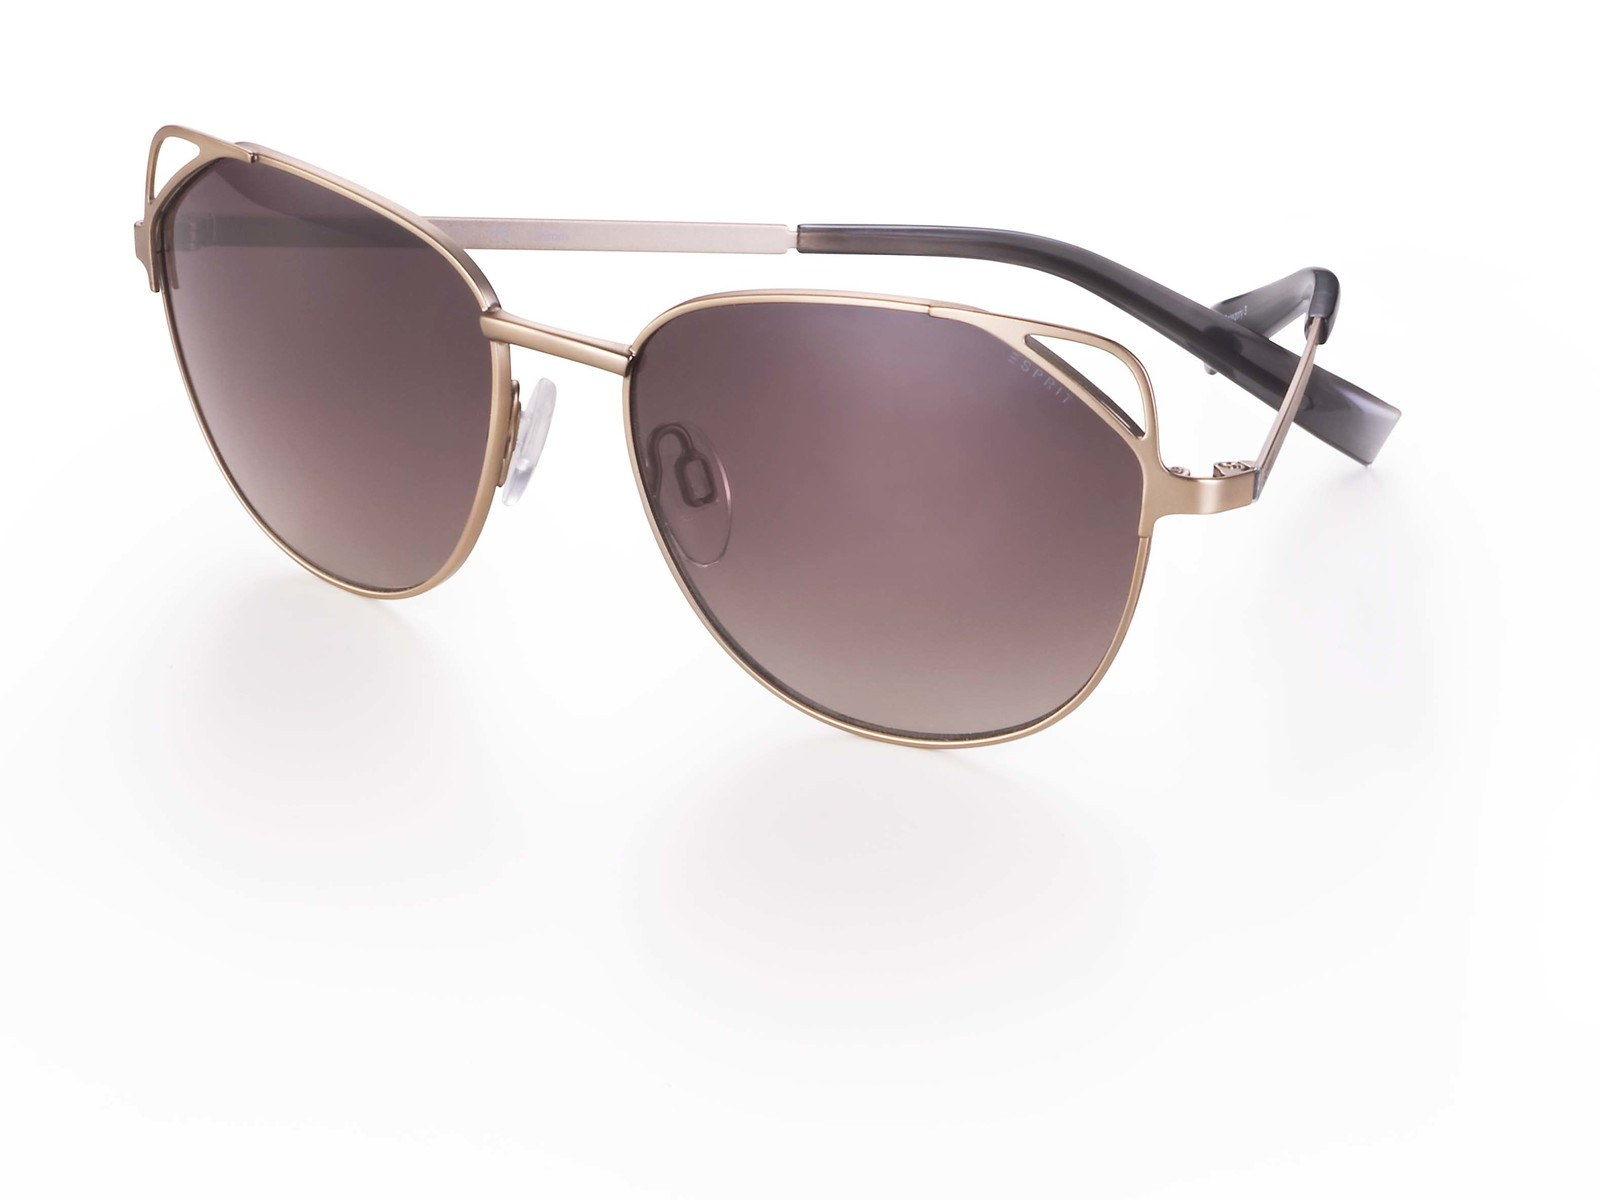 654eb18a77ab89 Esprit Sunwear 2019 • News - De Opticien